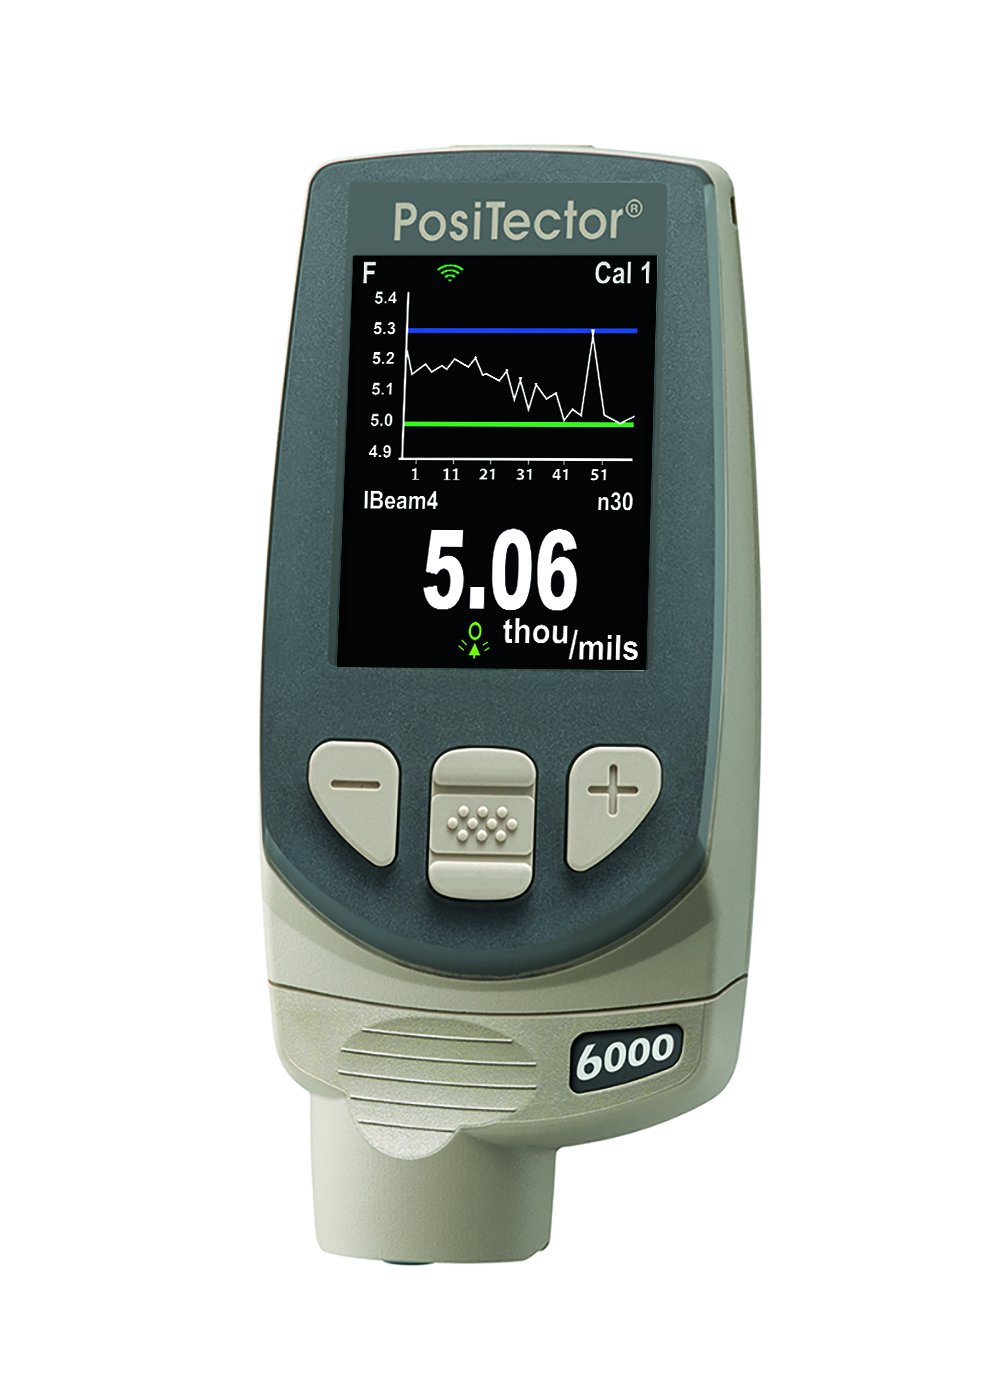 Defelsko FT1-E PosiTector 6000 Standard Electronic Coating Thickness Gage with Removable Built-In Probe for Ferrous Metals, 0-250 mils Range